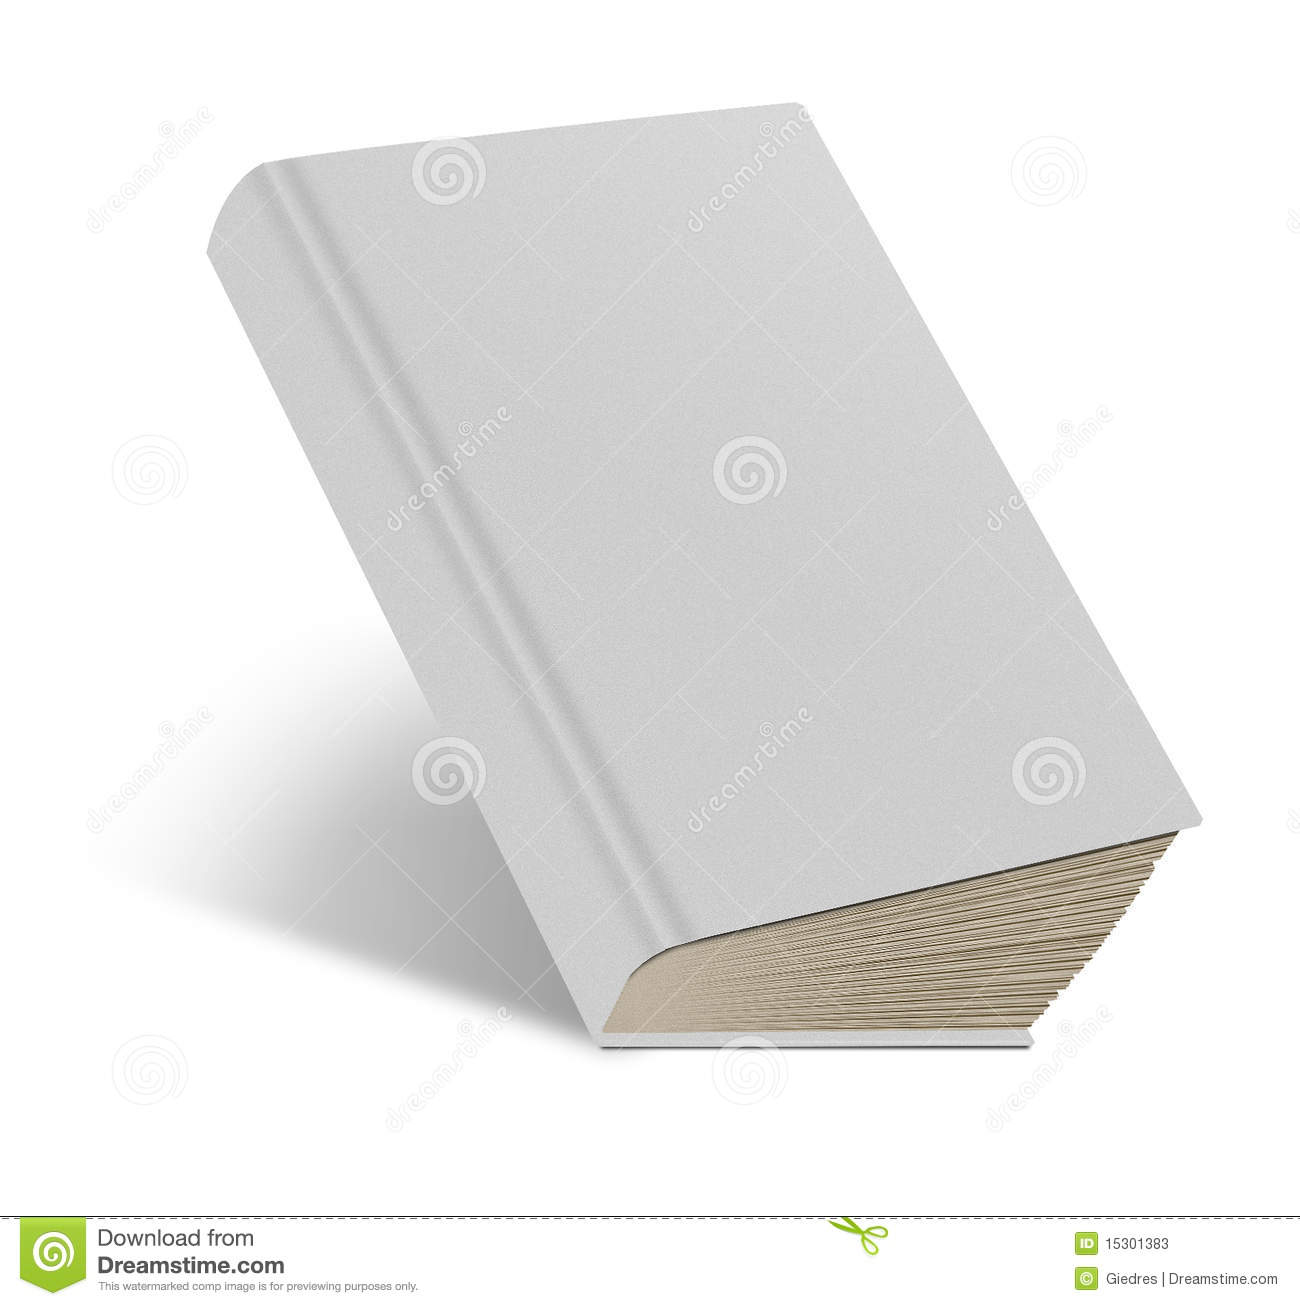 Book With White Cover : White book cover pictures to pin on pinterest daddy